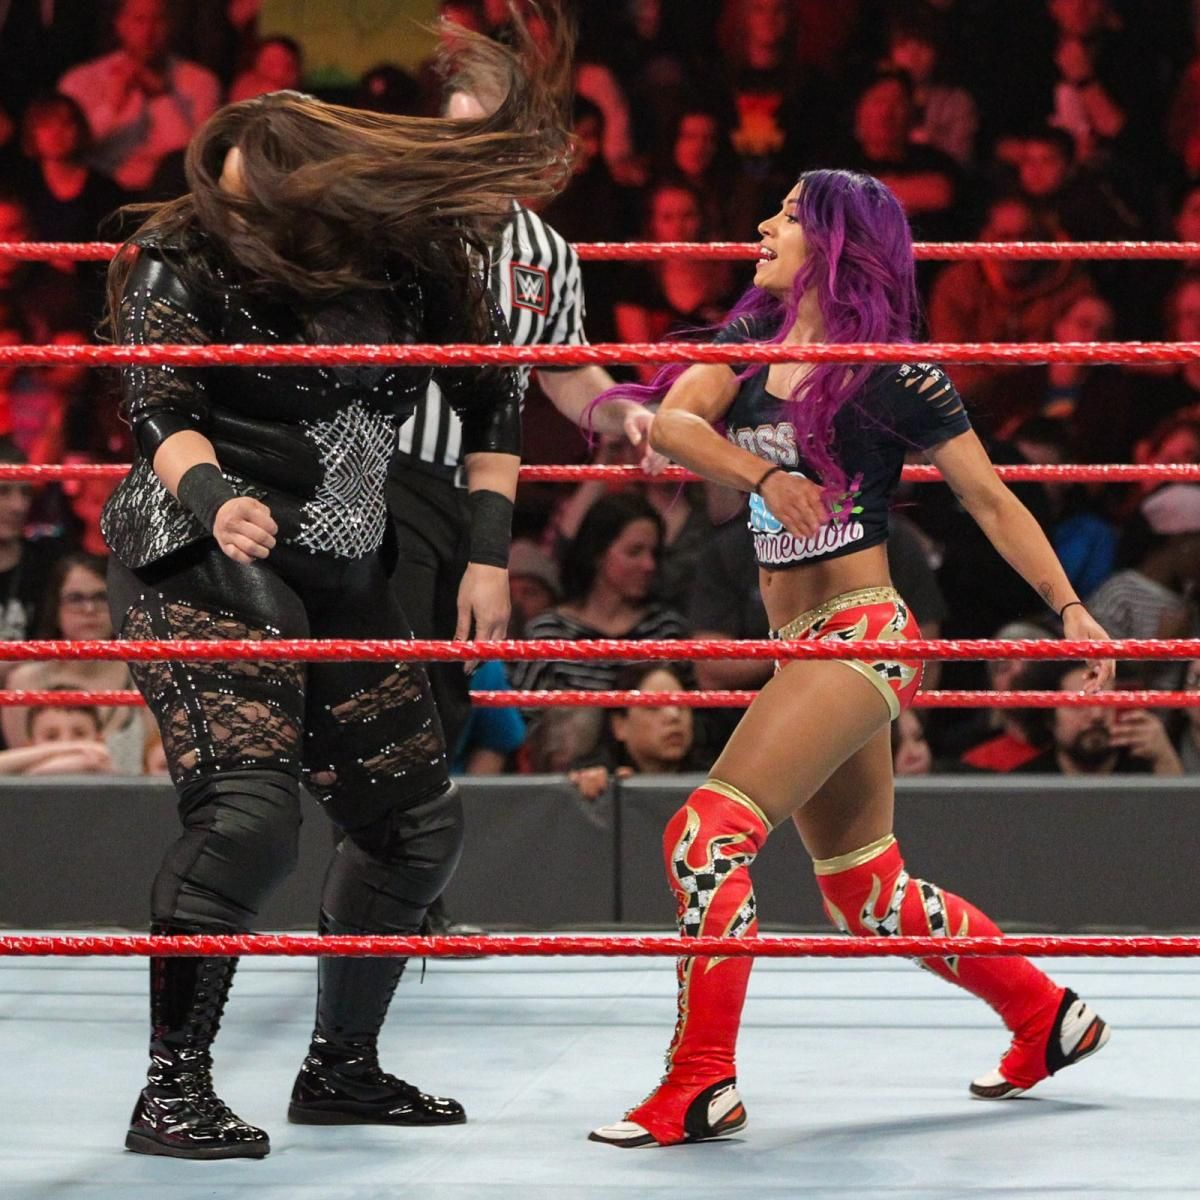 Photos Trio Of Team Red Tandems Battle With Major Elimination Chamber Match Ramifications Wwe Girls Raw Women S Champion Sasha Bank